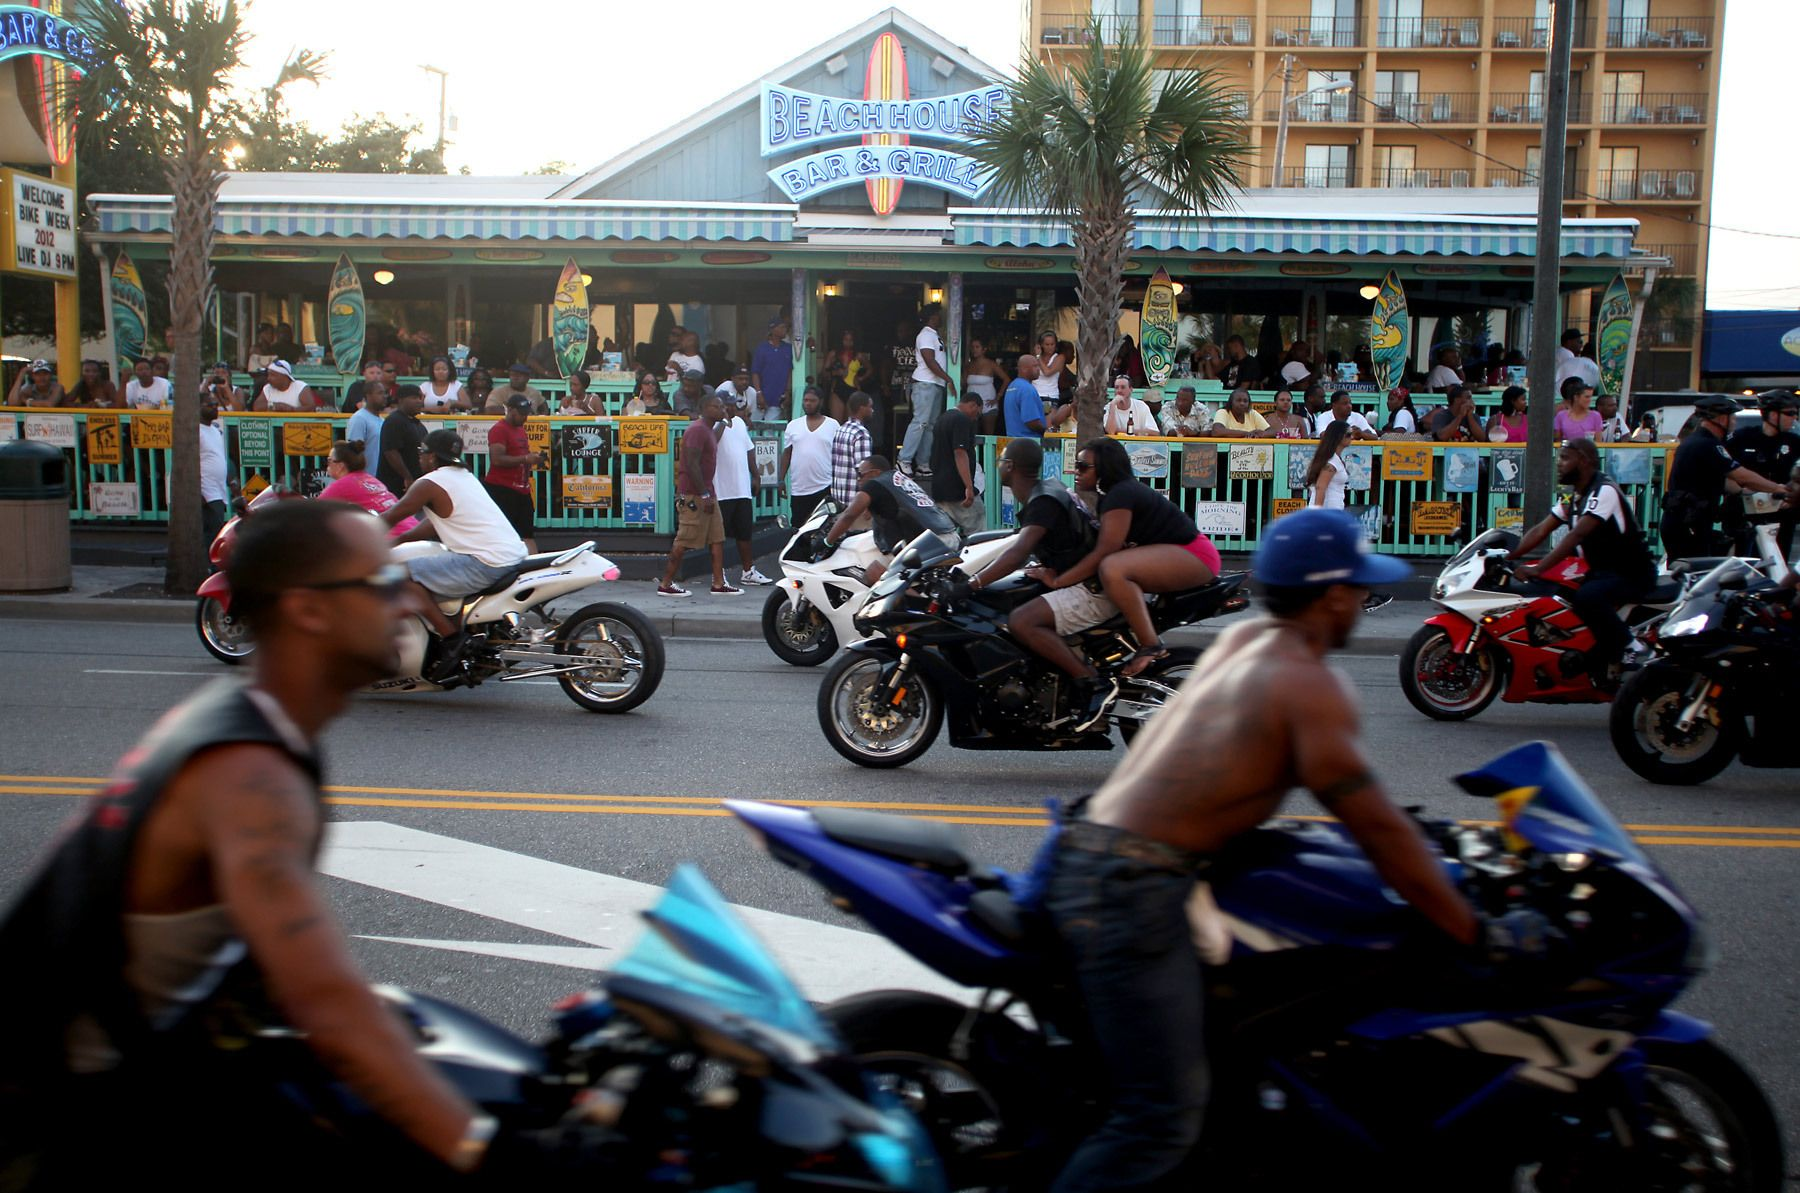 Bikers cruise down North Ocean Boulevard in front of the Beach House Bar and Grill Thursday evening in Myrtle Beach during the Atlantic Beach Memorial Day Bikefest. The bar is popular with onlookers and bikers because of the front patio overlooking the boulevard. Although centered in nearby Atlantic Beach, the Bikefest has spread to neighboring beaches in the Grand Strand region of the coast. (Photo By Randall Hill, For The Washington Post)